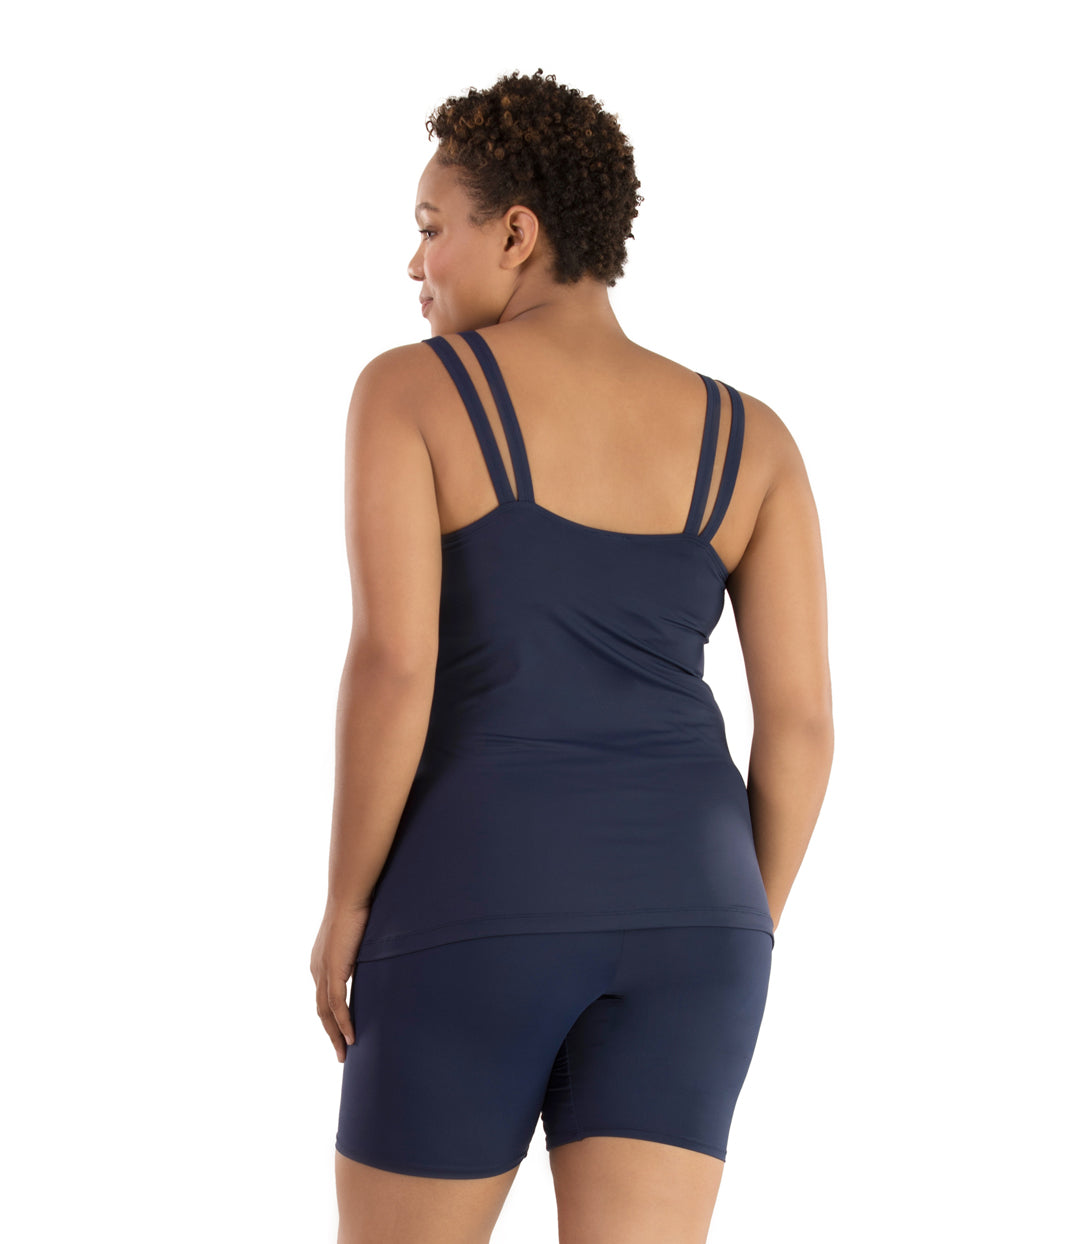 Junowear Hush Strappy Cami with Bra-Plus Size Underwear & Intimates-Hop Wo Trading Co Ltd-1X-NAVY BLUE-JunoActive